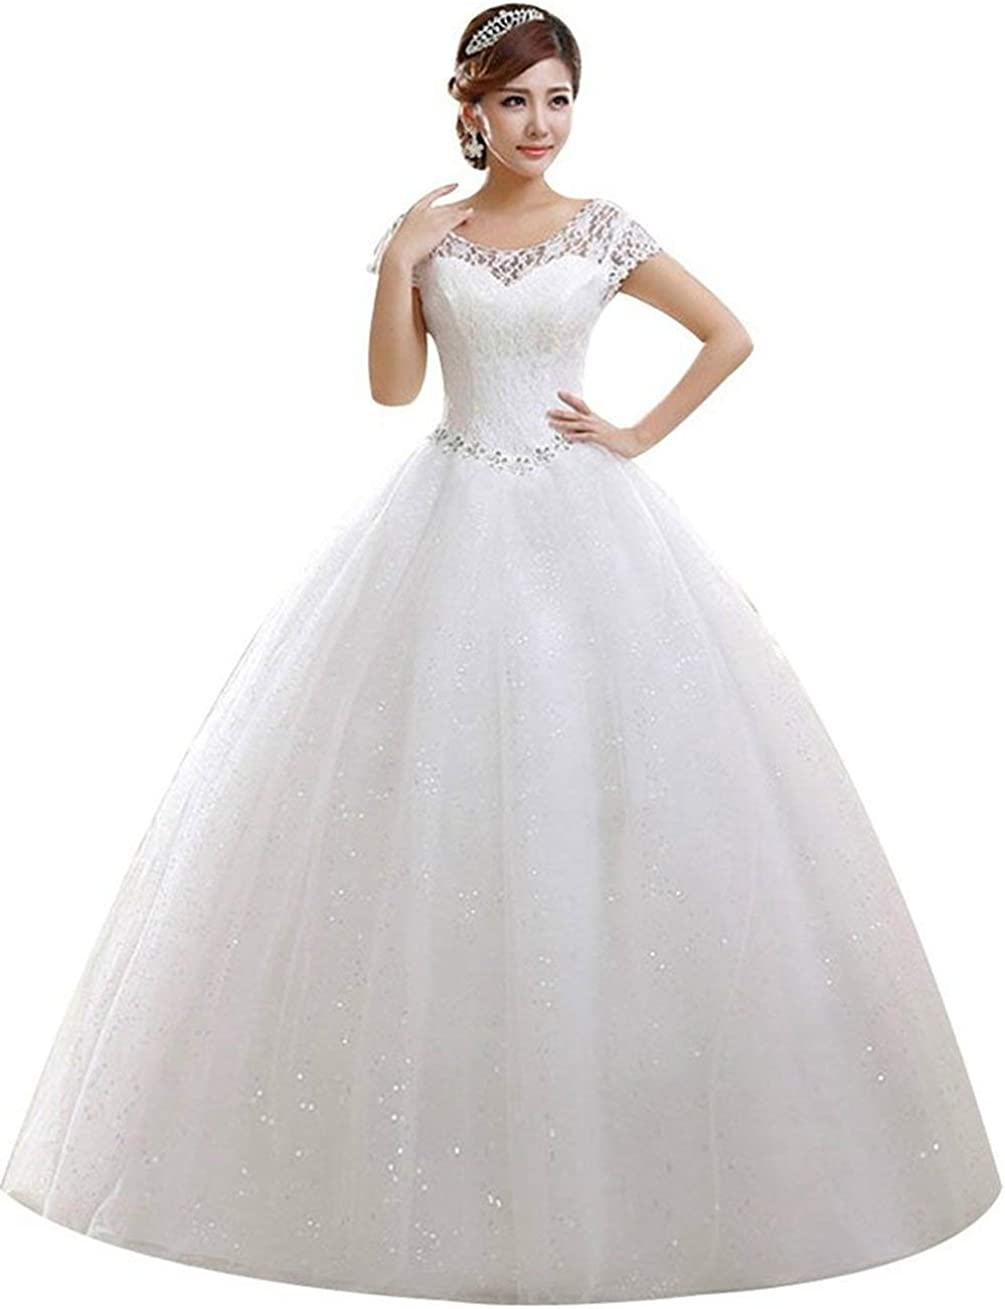 Clover Bridal 2019 Elegant Ranking TOP1 Jewel Scoop Capped Inexpensive Beaded Lace G Ball